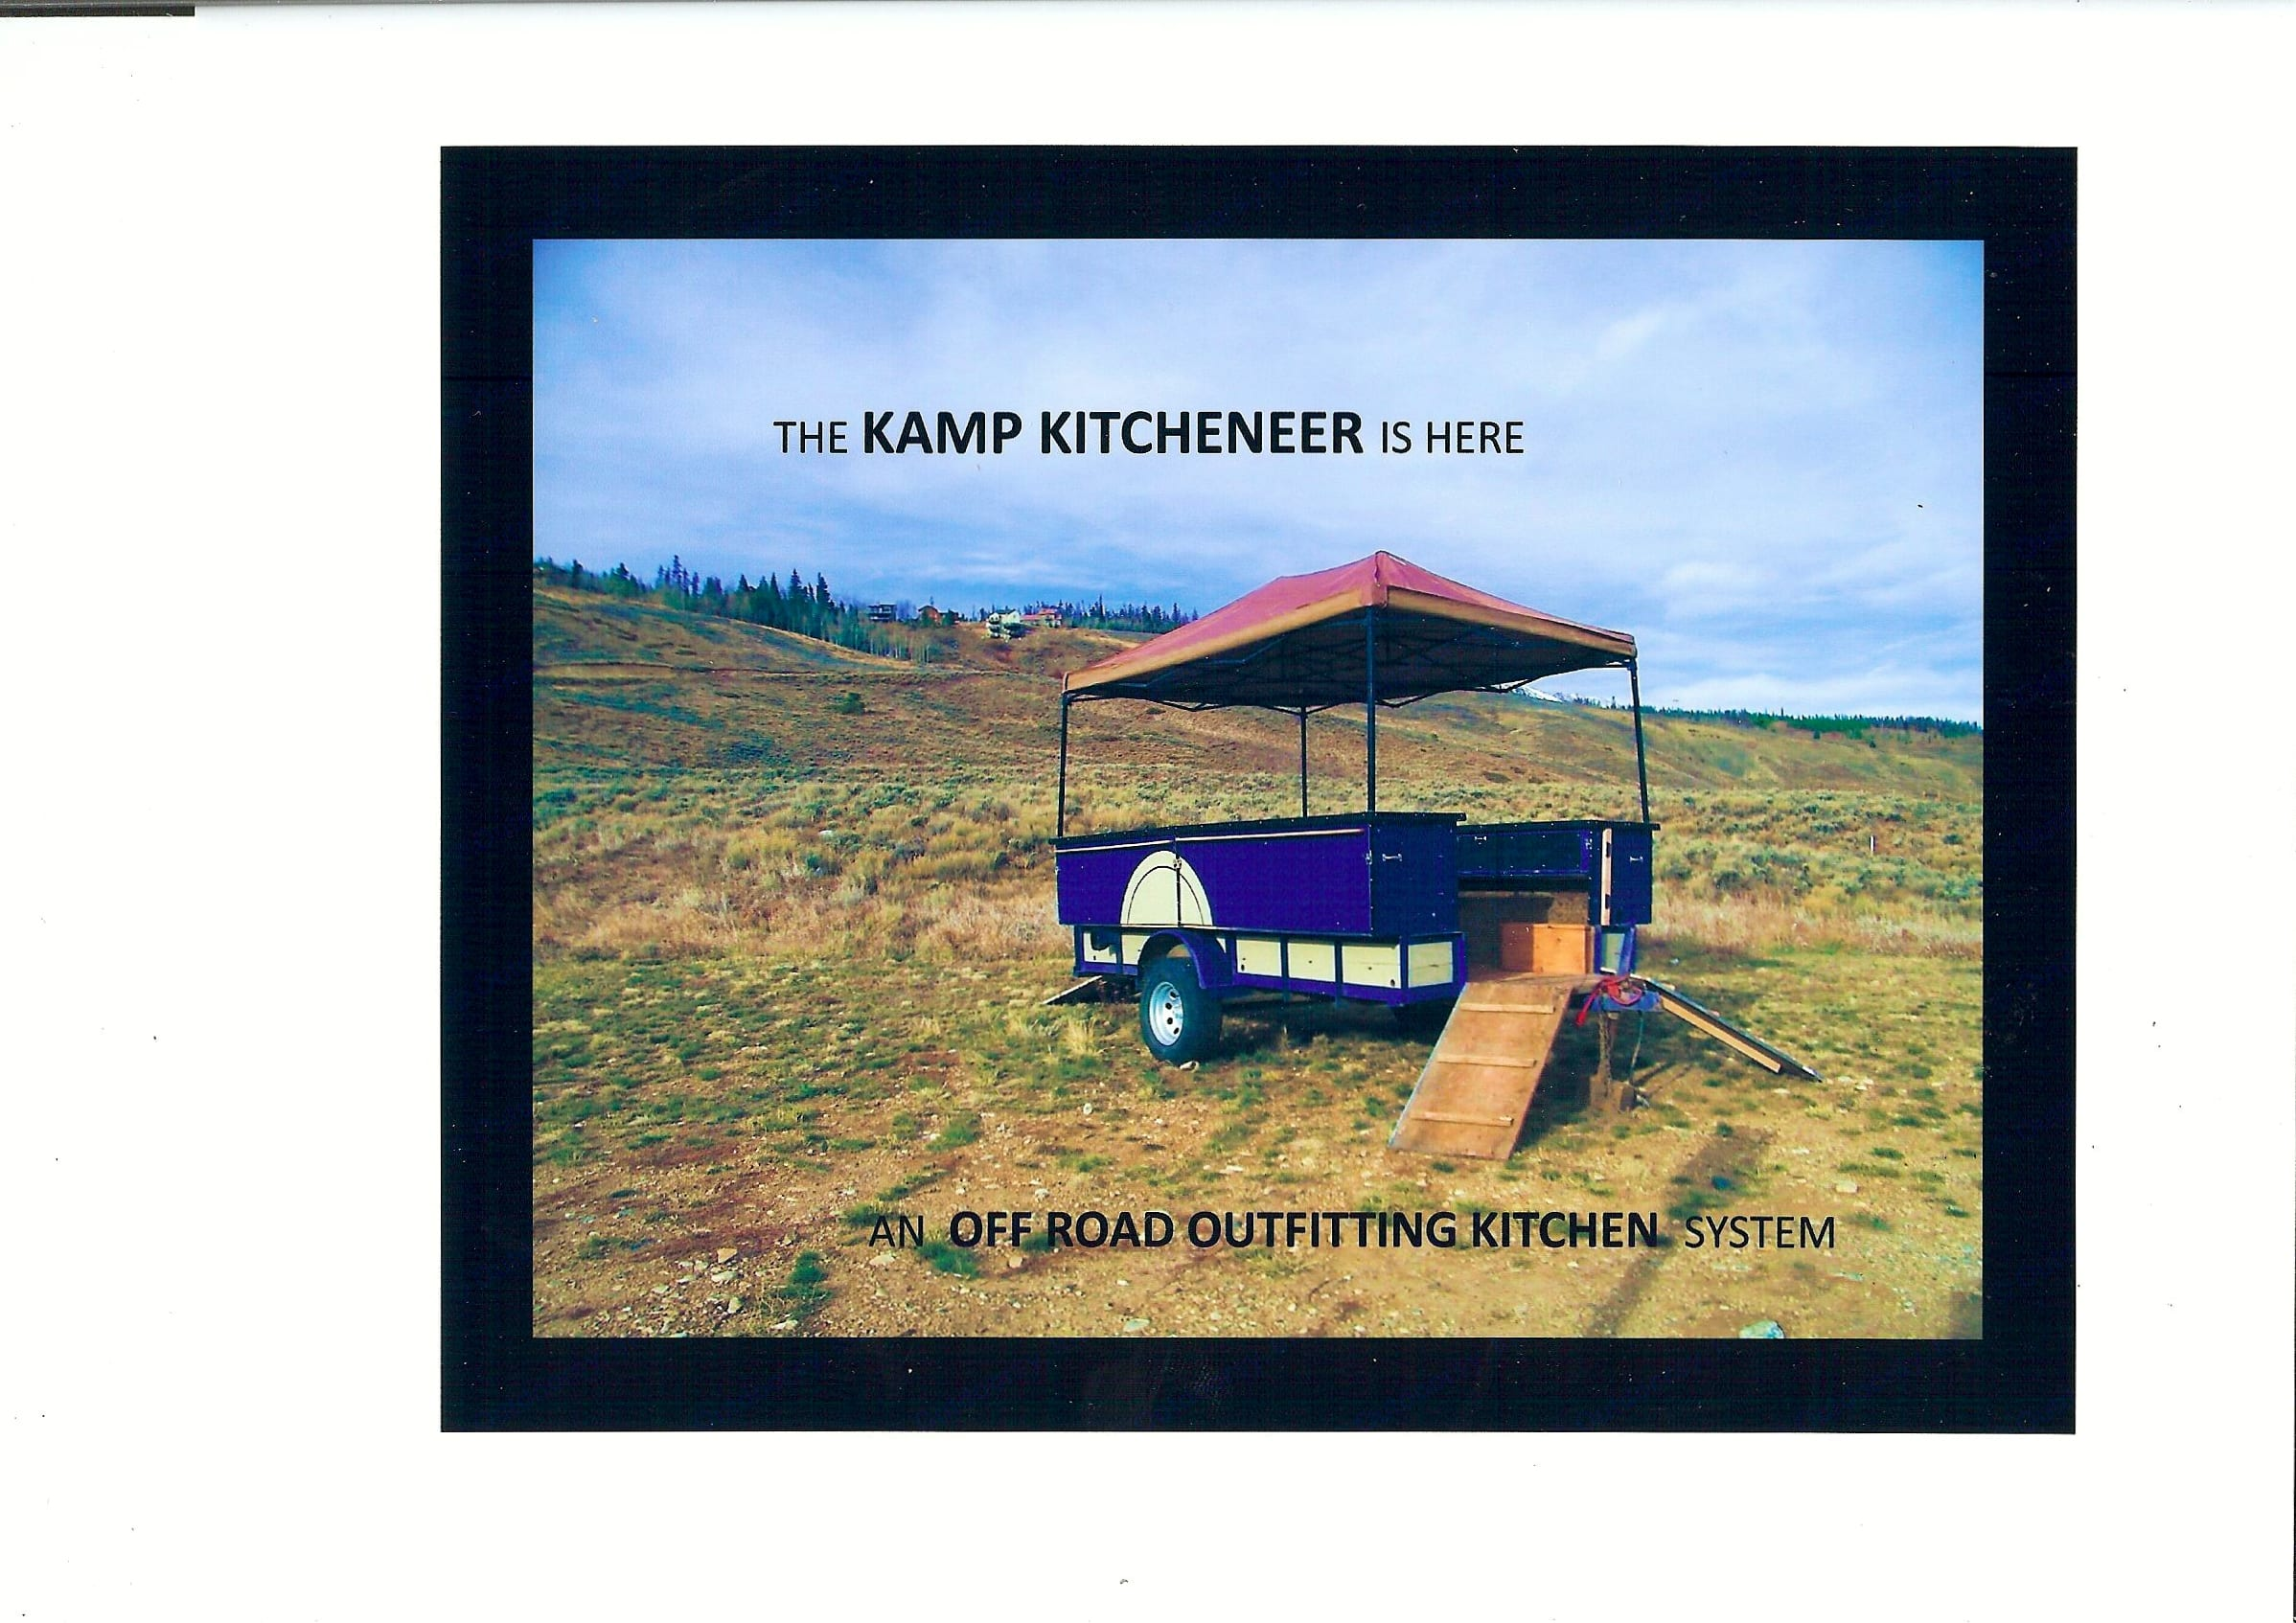 The Kamp Kitcheneer - An Off Road Kitchen System. Private manufacturer Kamp Kitcheneer Off Road Kitchen Trailer 2016